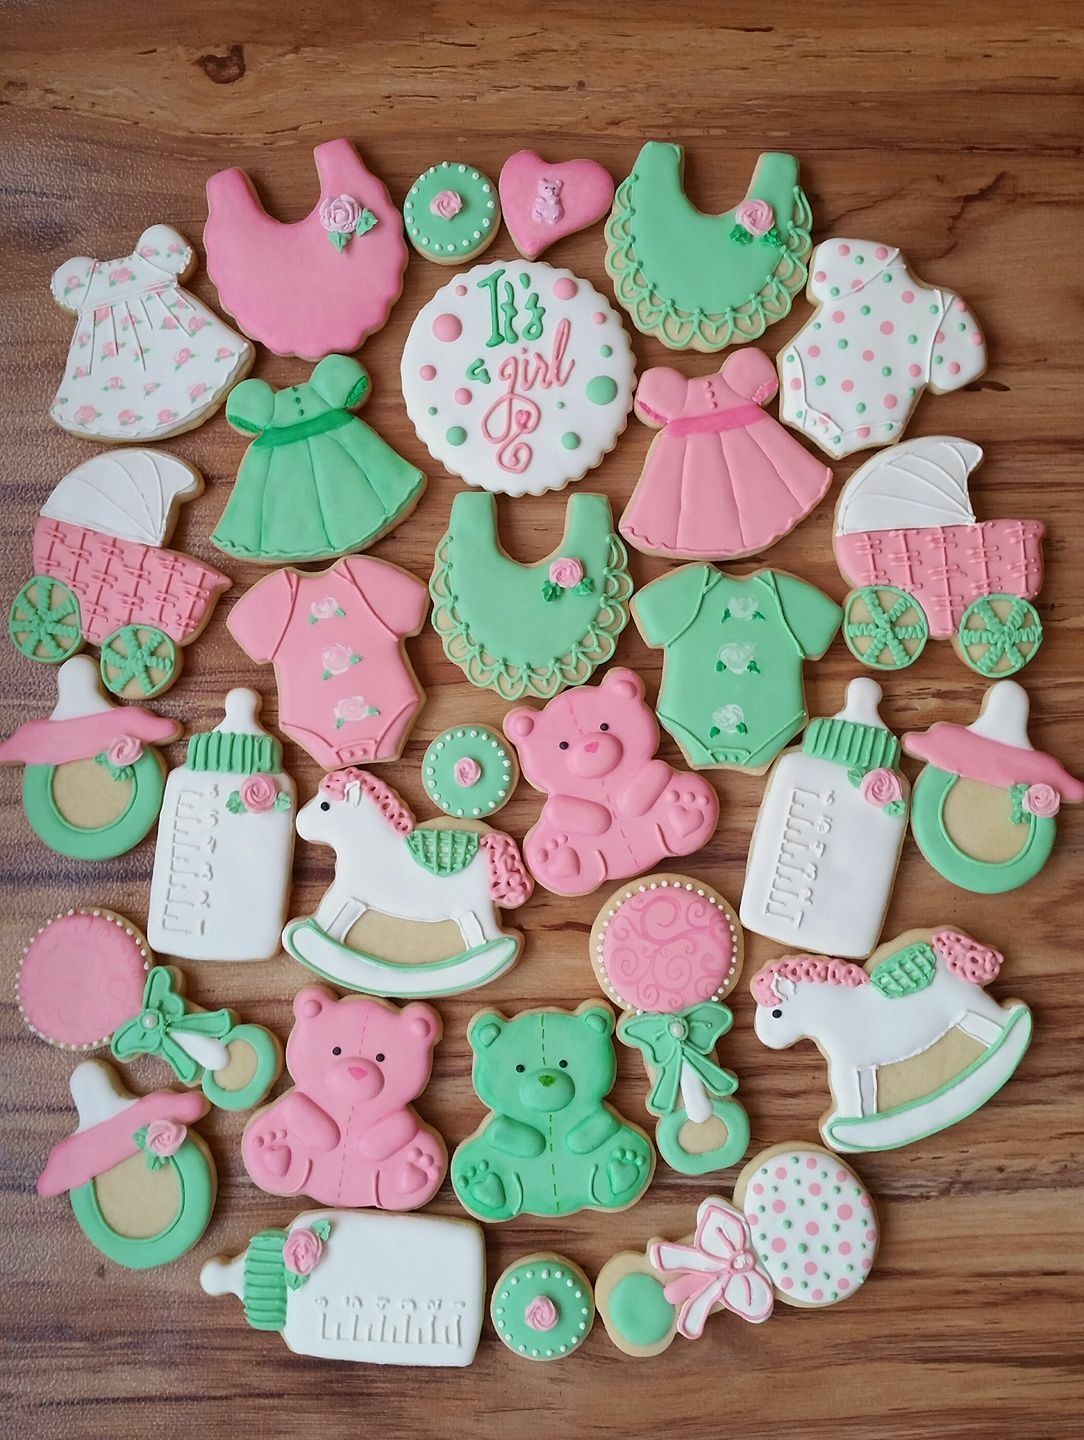 Beautiful Baby Shower Cookies By Lillive Reyes Of Vanilly Pastry